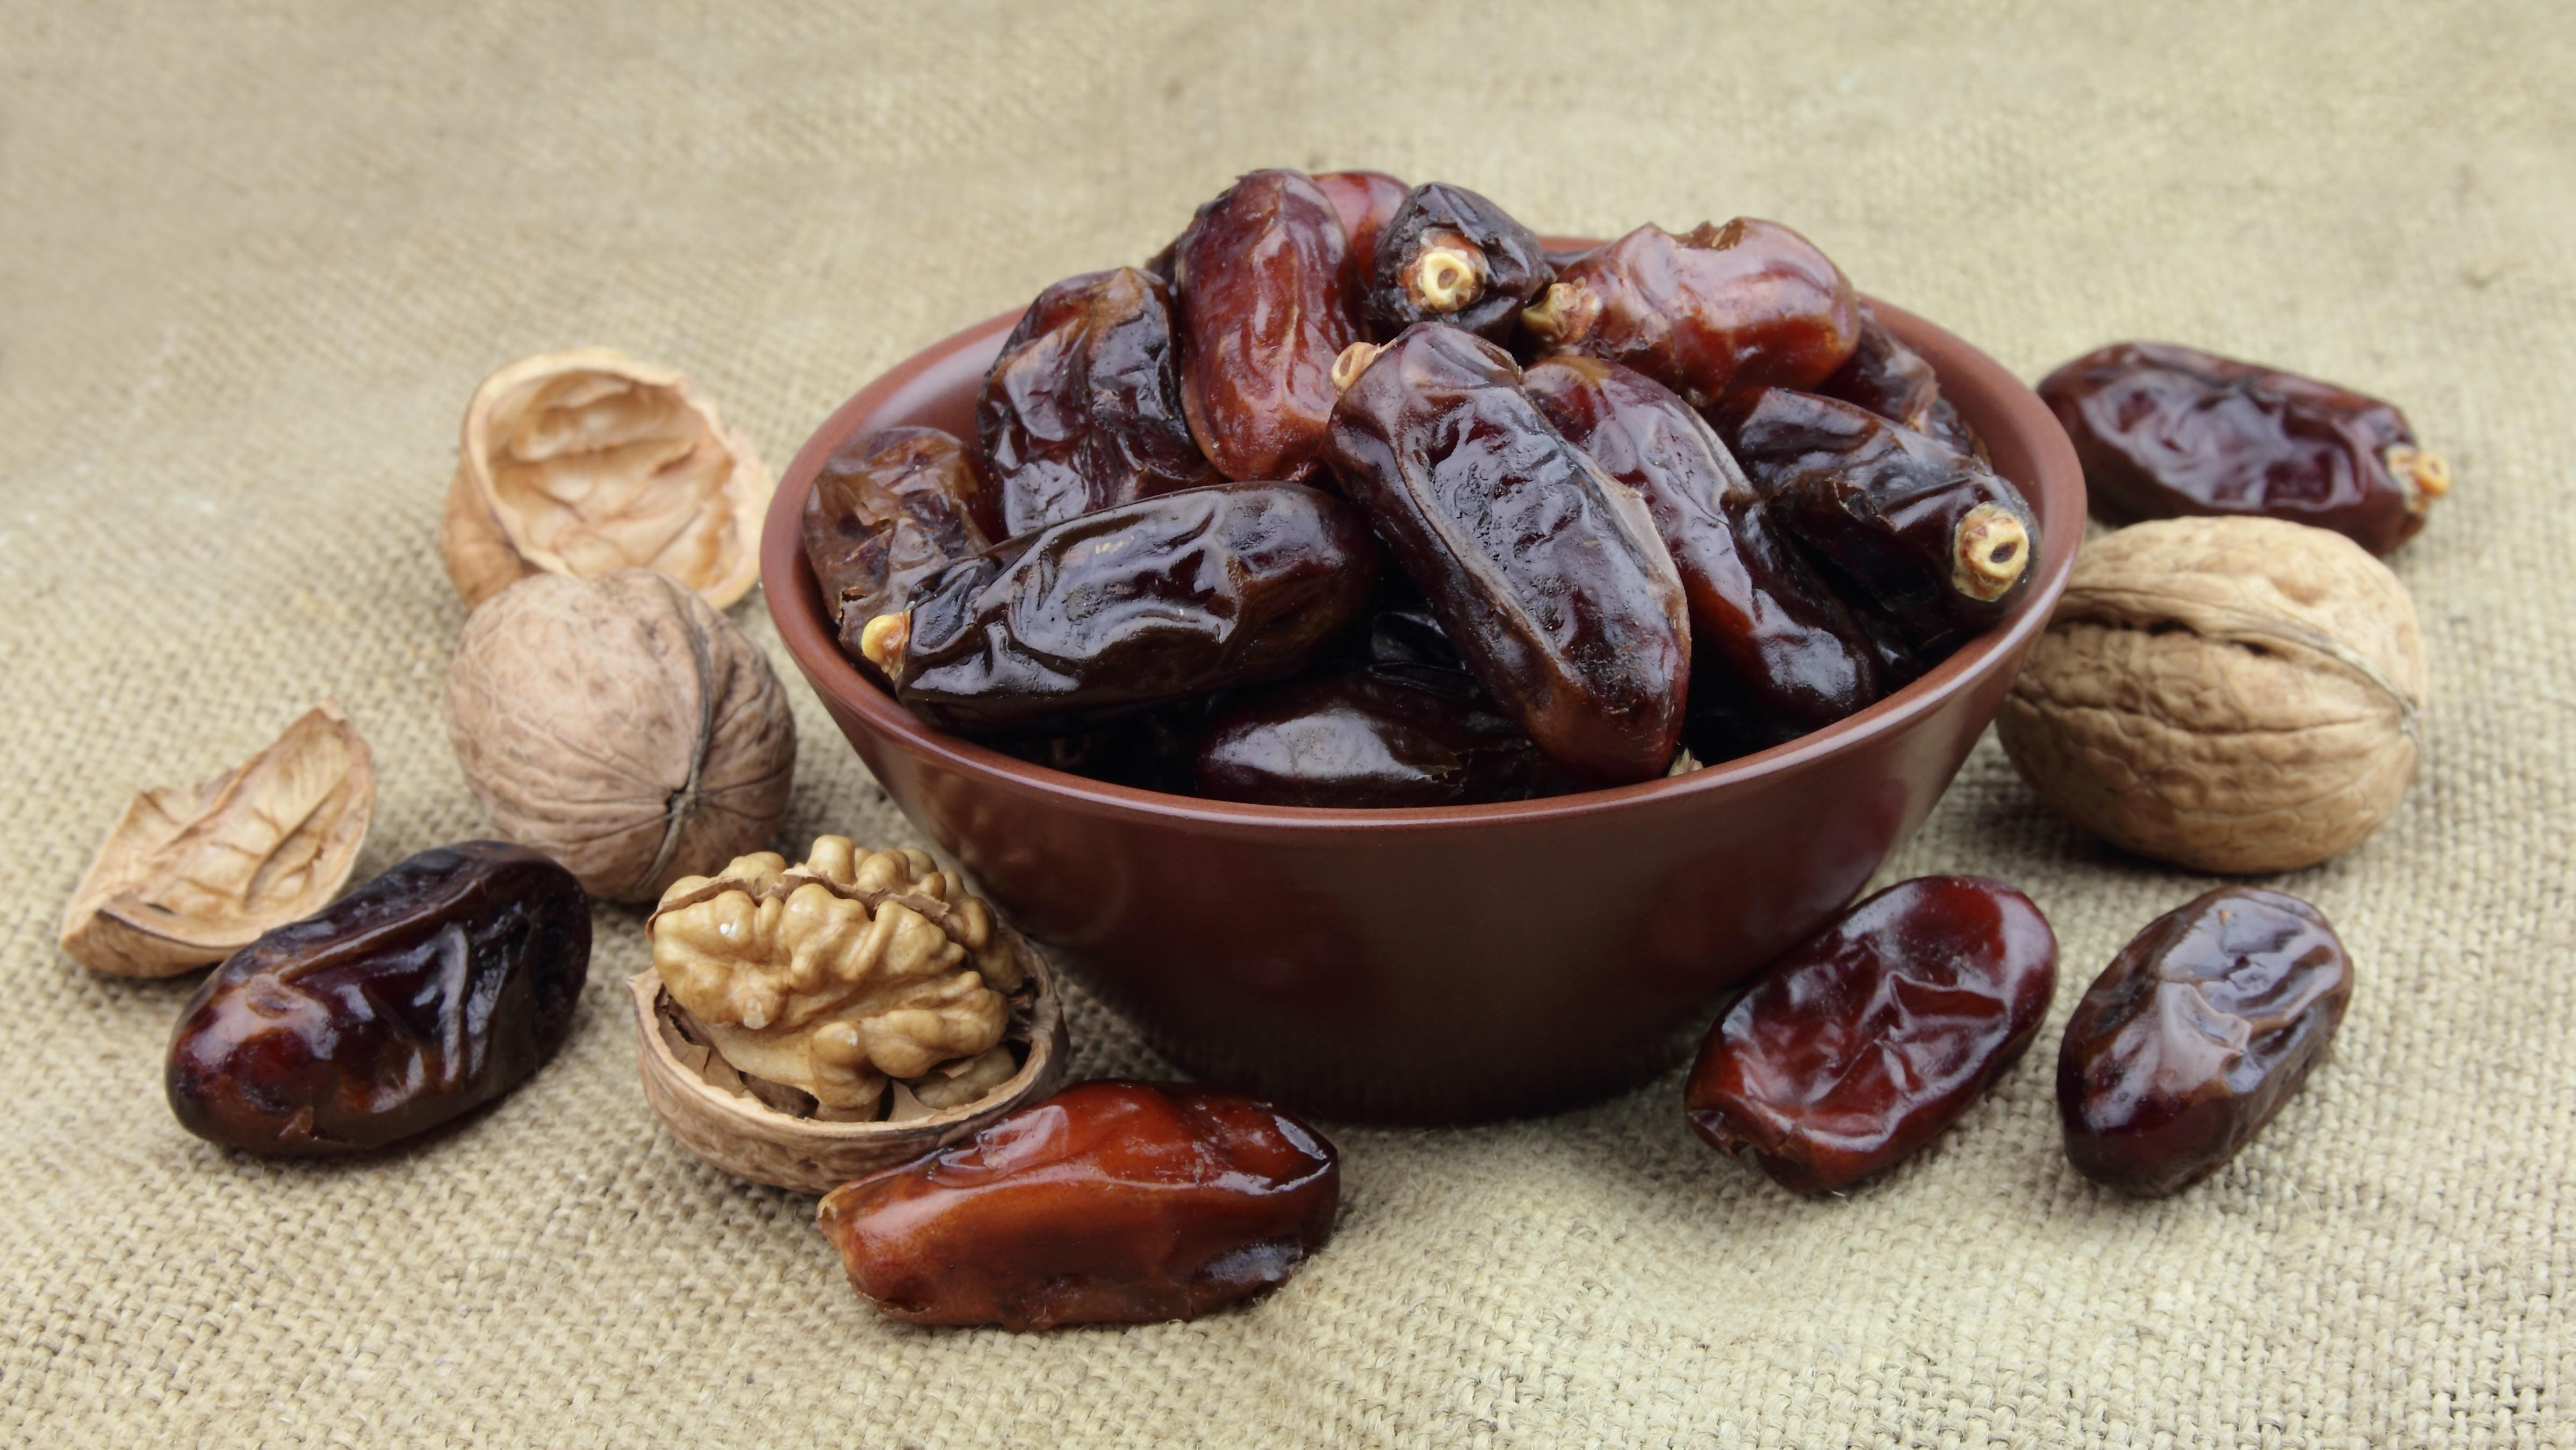 chronic insomnia dates and walnuts image